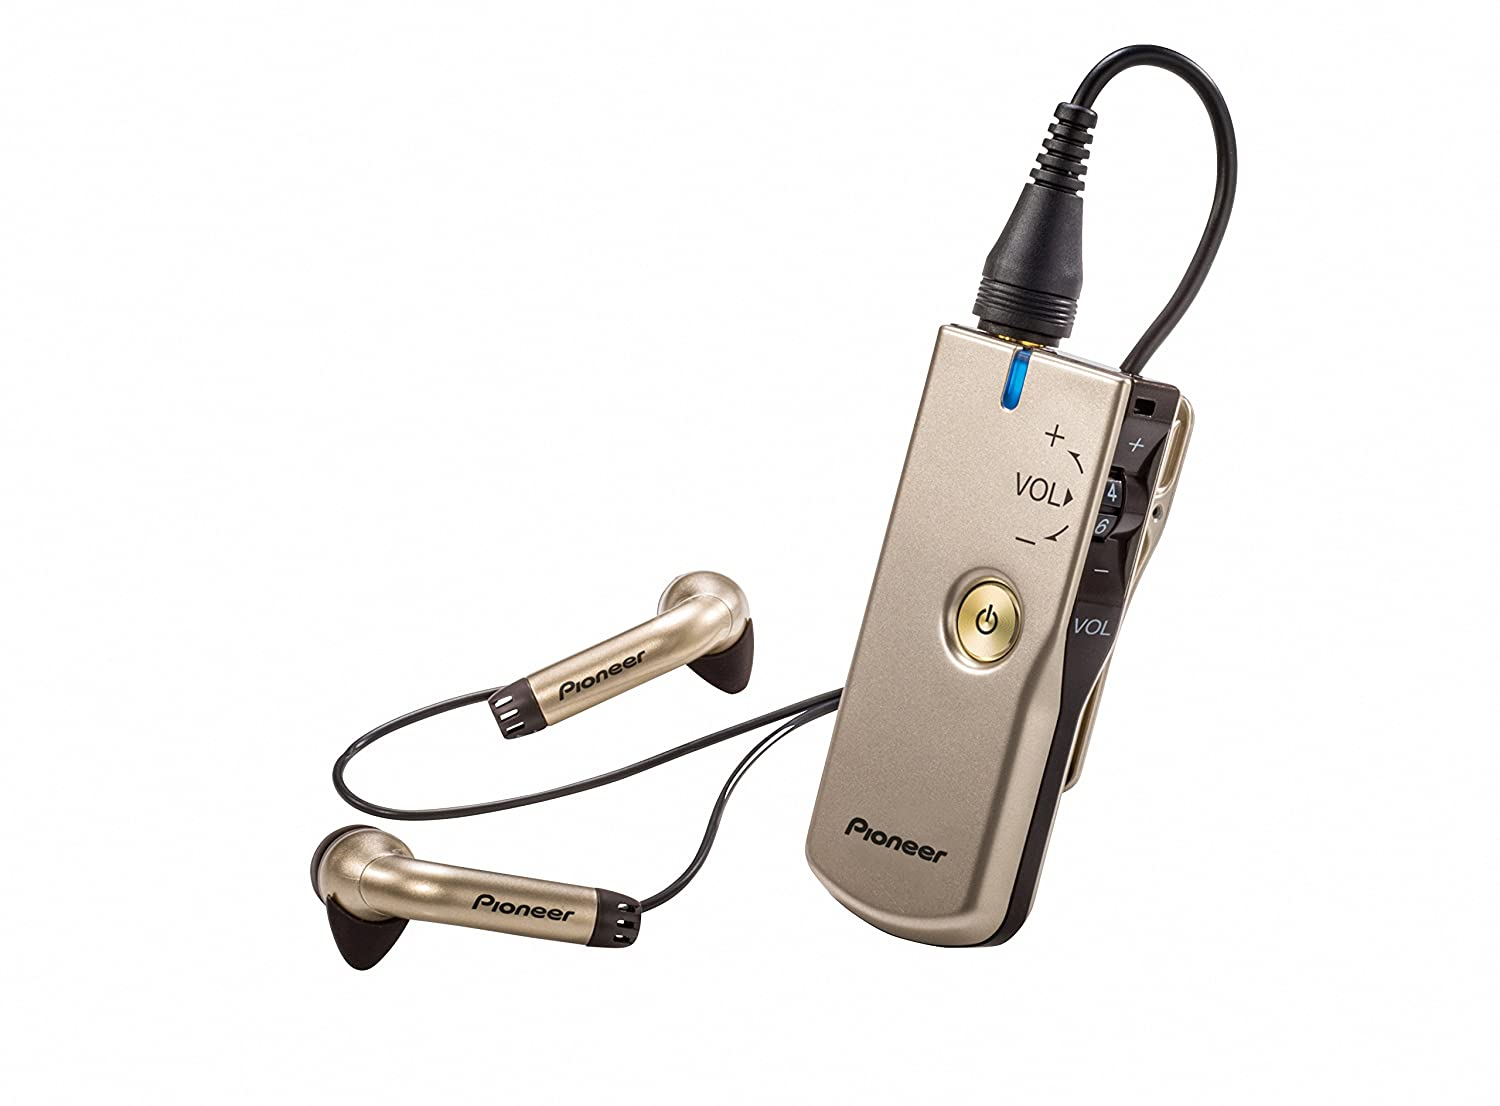 Pioneer Nani Personal Sound Amplifier with in-Ear Headphones Champagne Gold PHA-M70 G